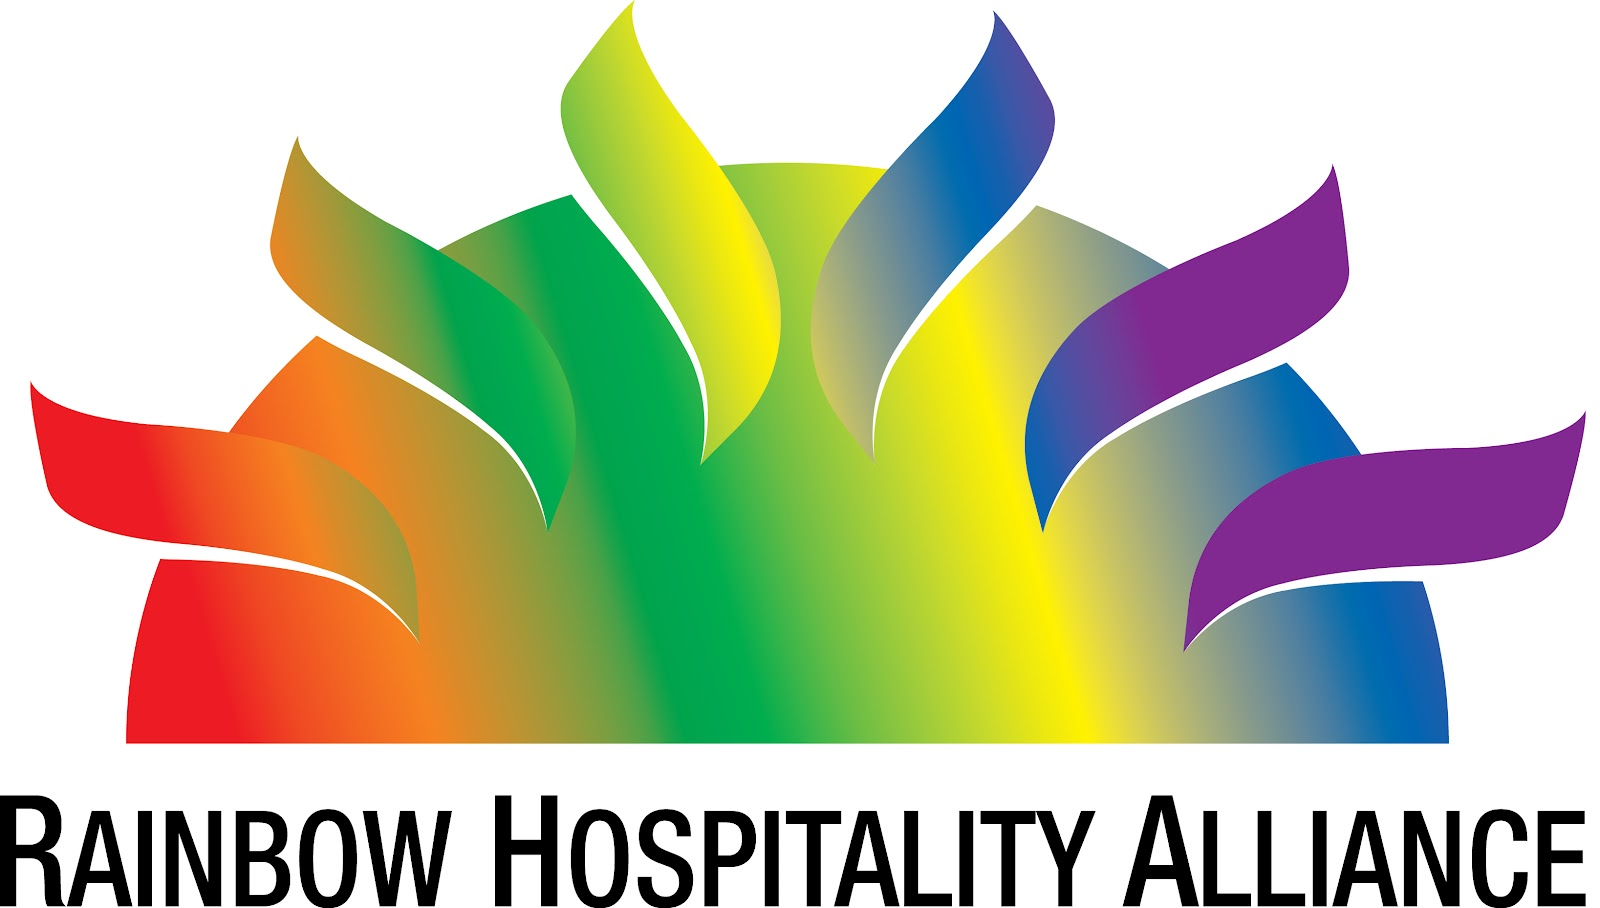 The advocate lgbt logo